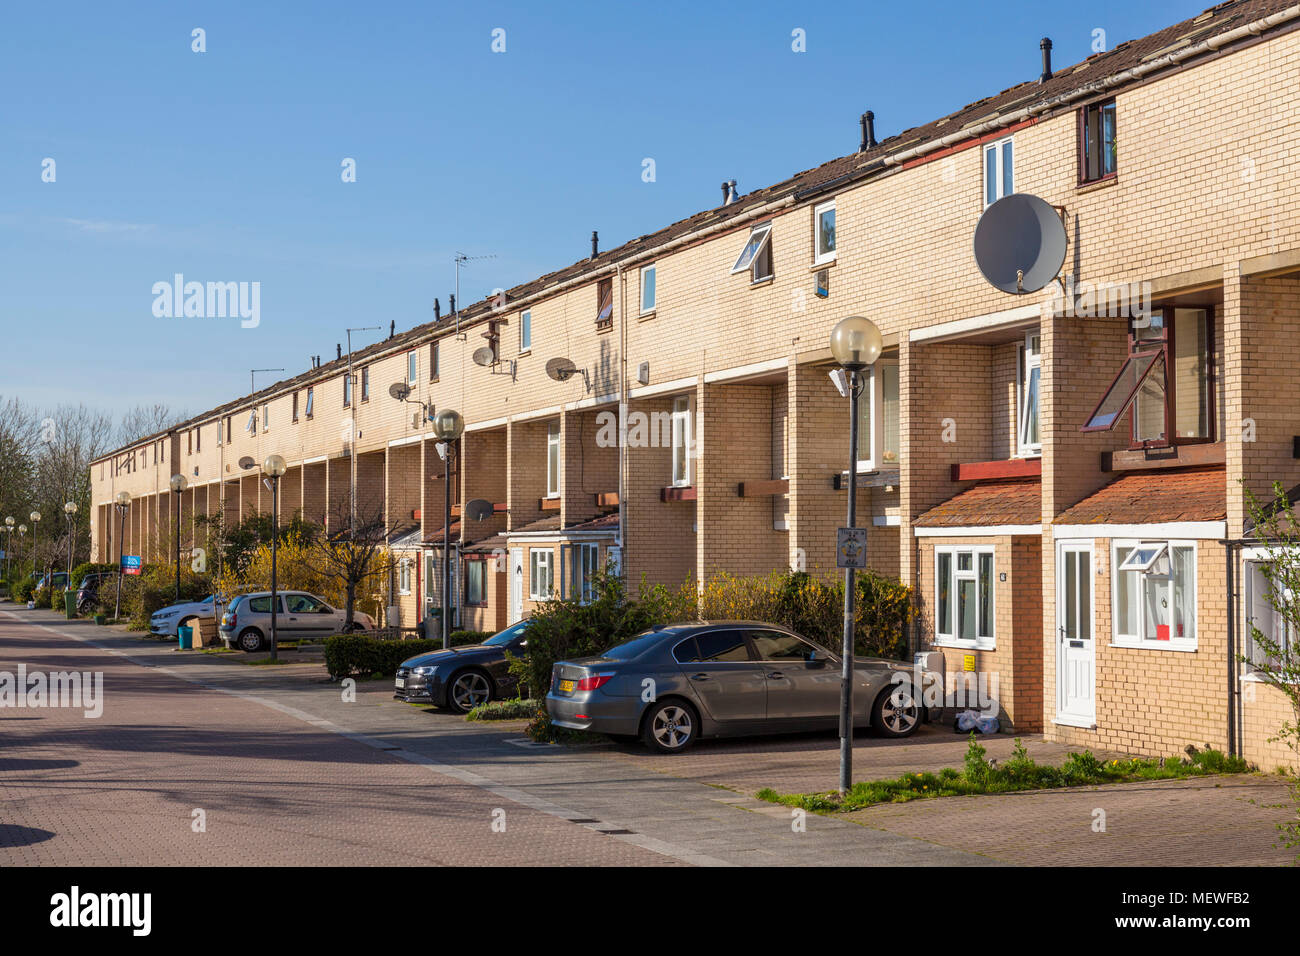 Milton Keynes England milton keynes houses central milton keynes buckinghamshire england gb uk europe - Stock Image